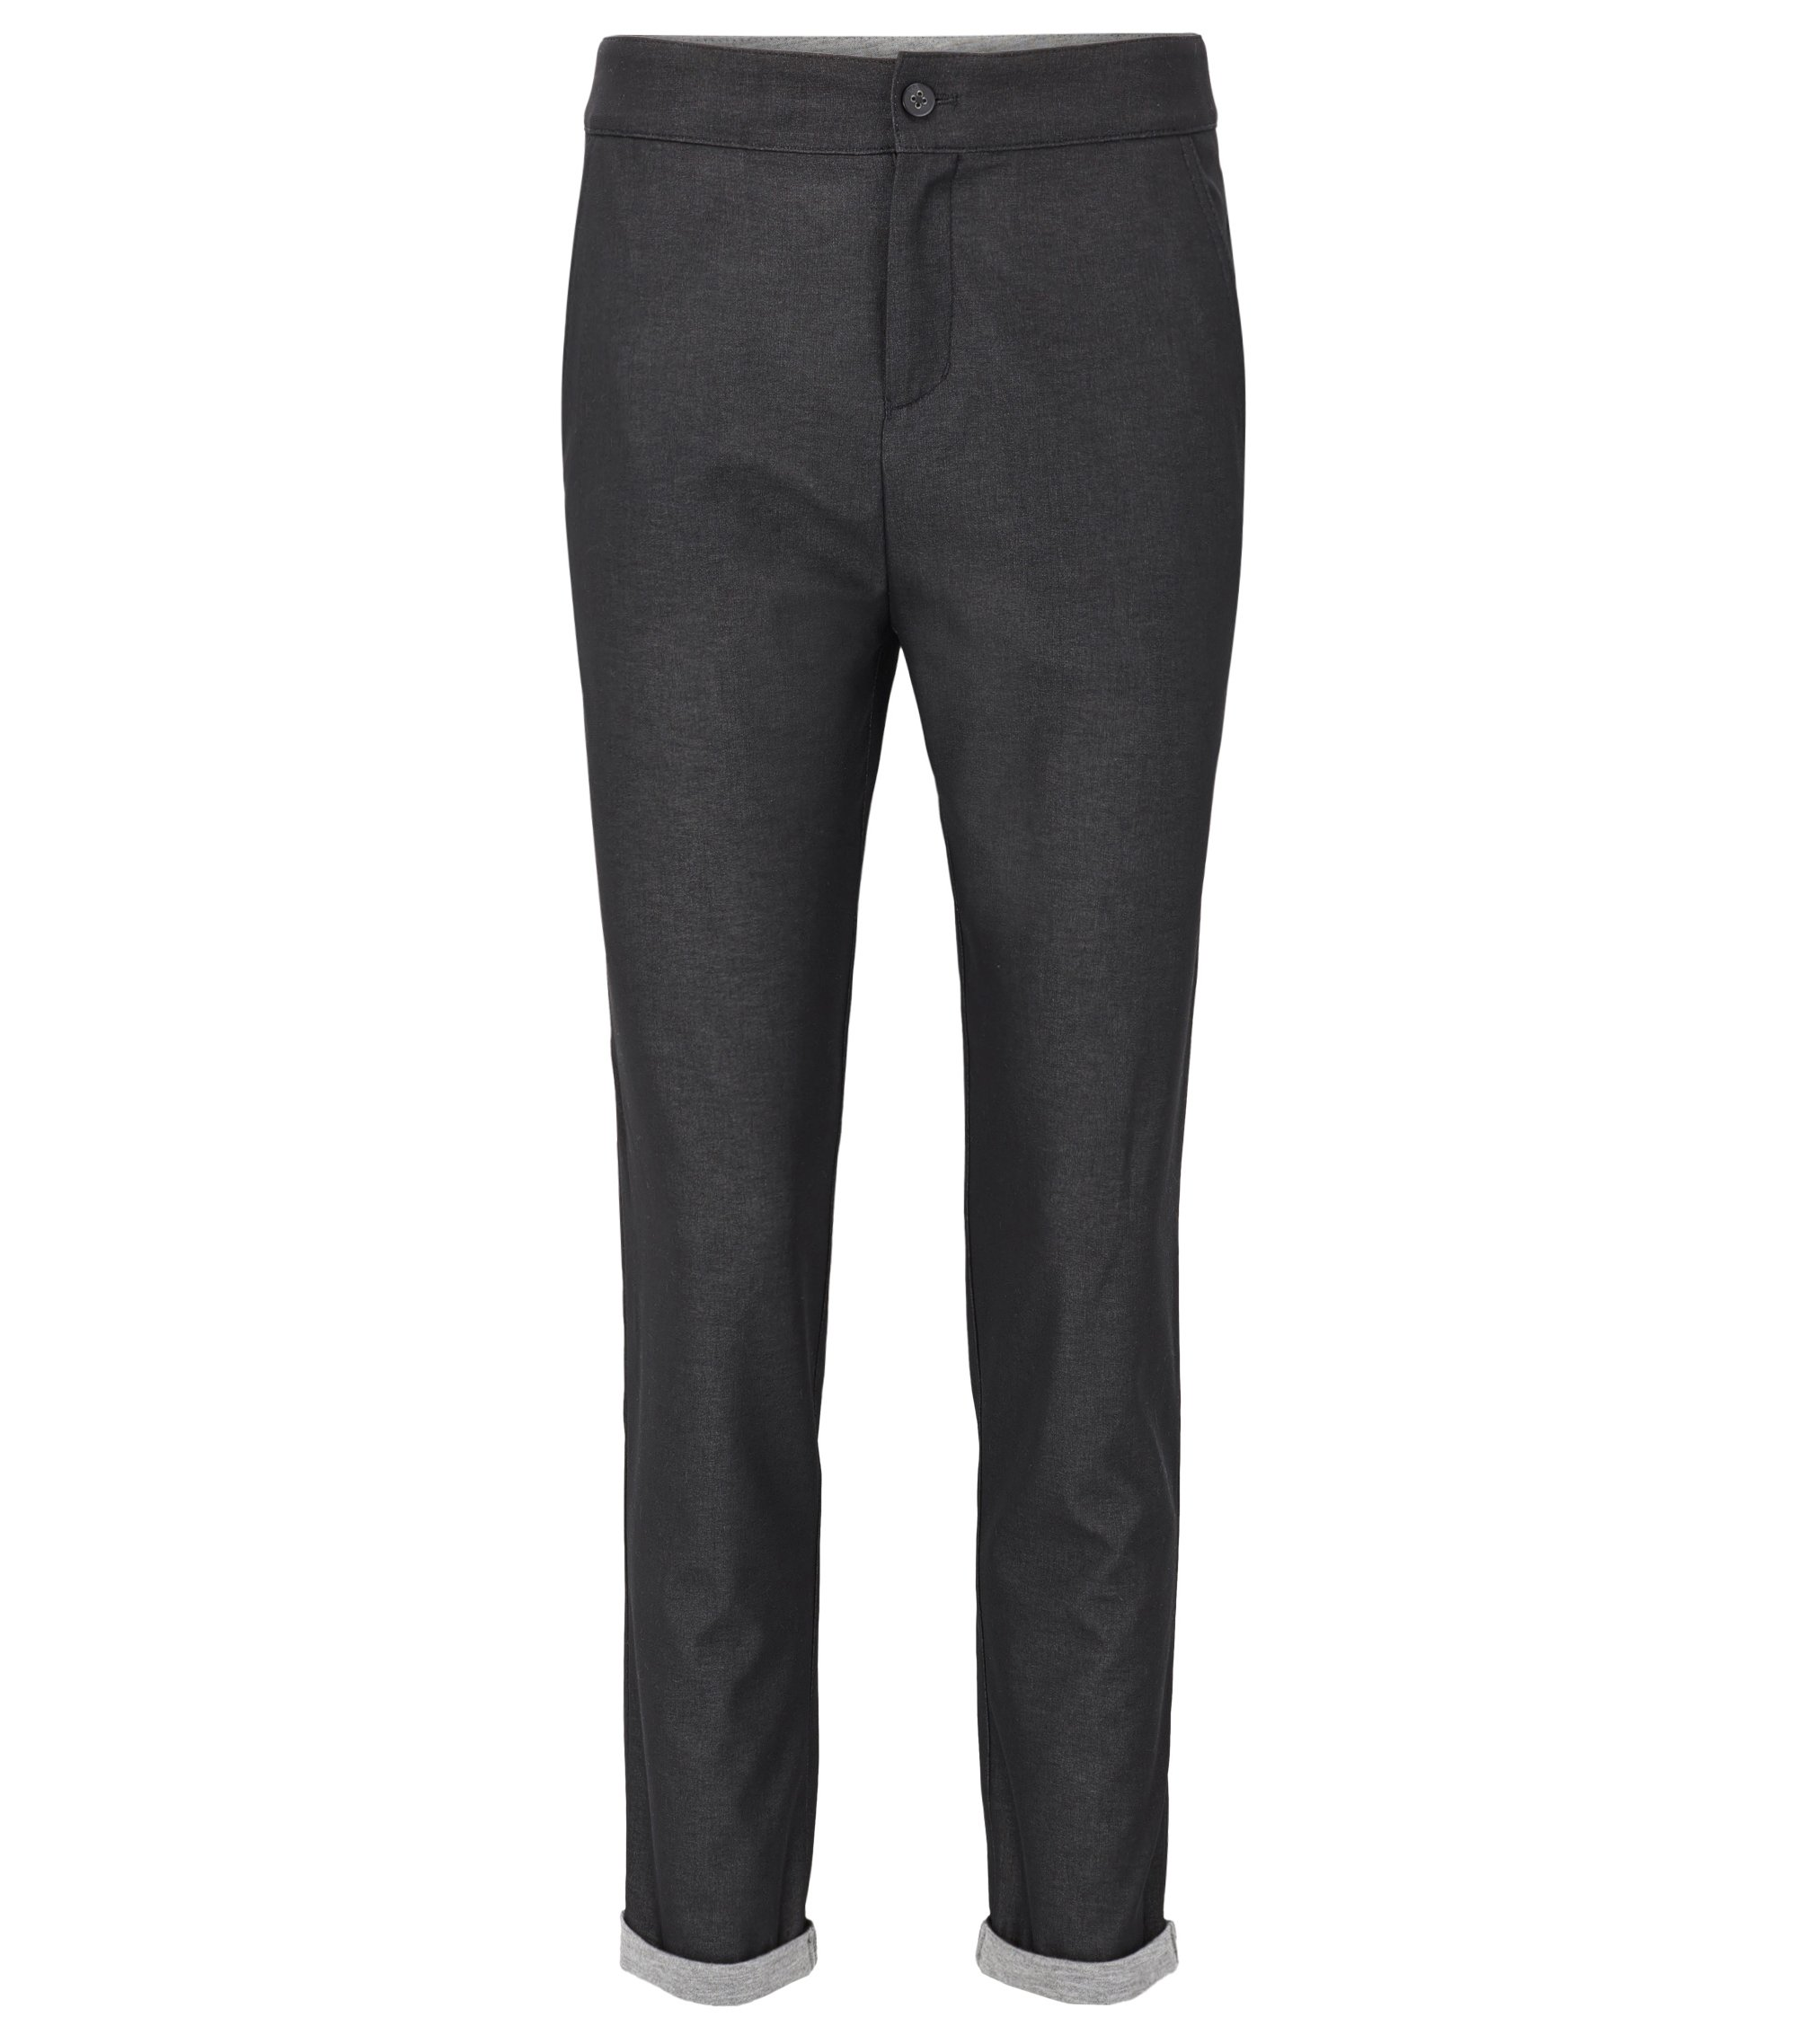 Regular-fit melange chiffon trousers bonded with jersey, Patterned